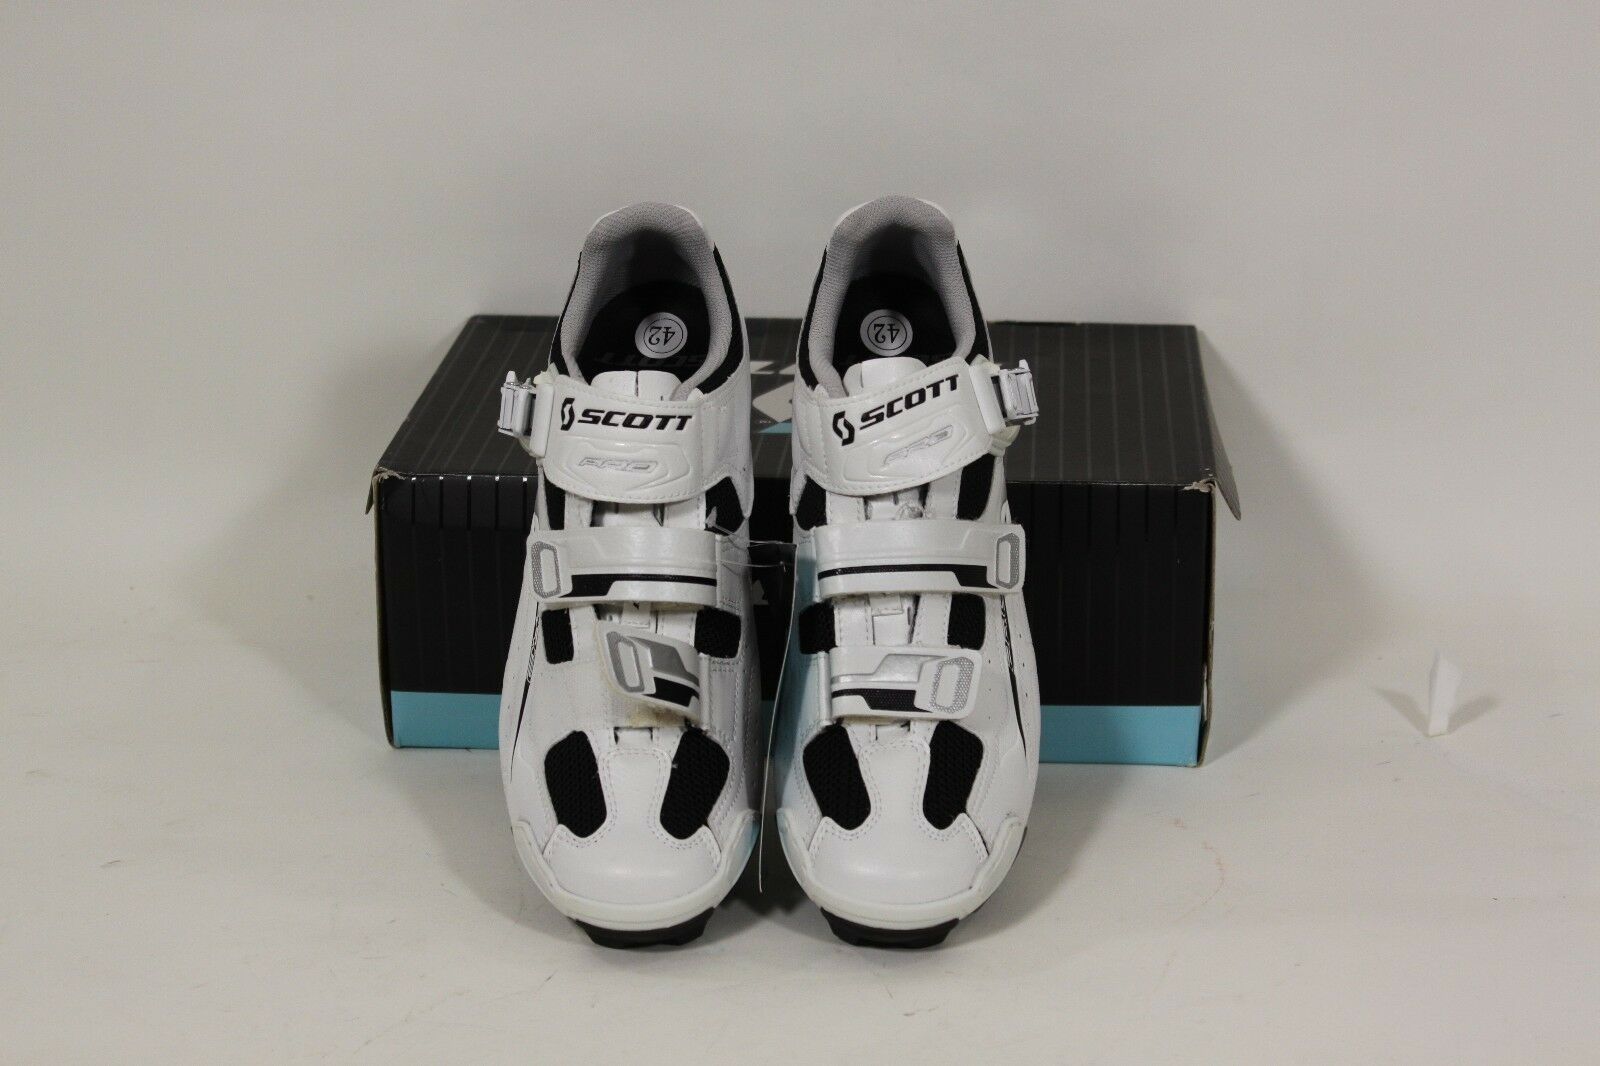 Scott MTB pro Donna Mountain Bike Scarpe Bianco e Nero Eu 38 o Us 6.5